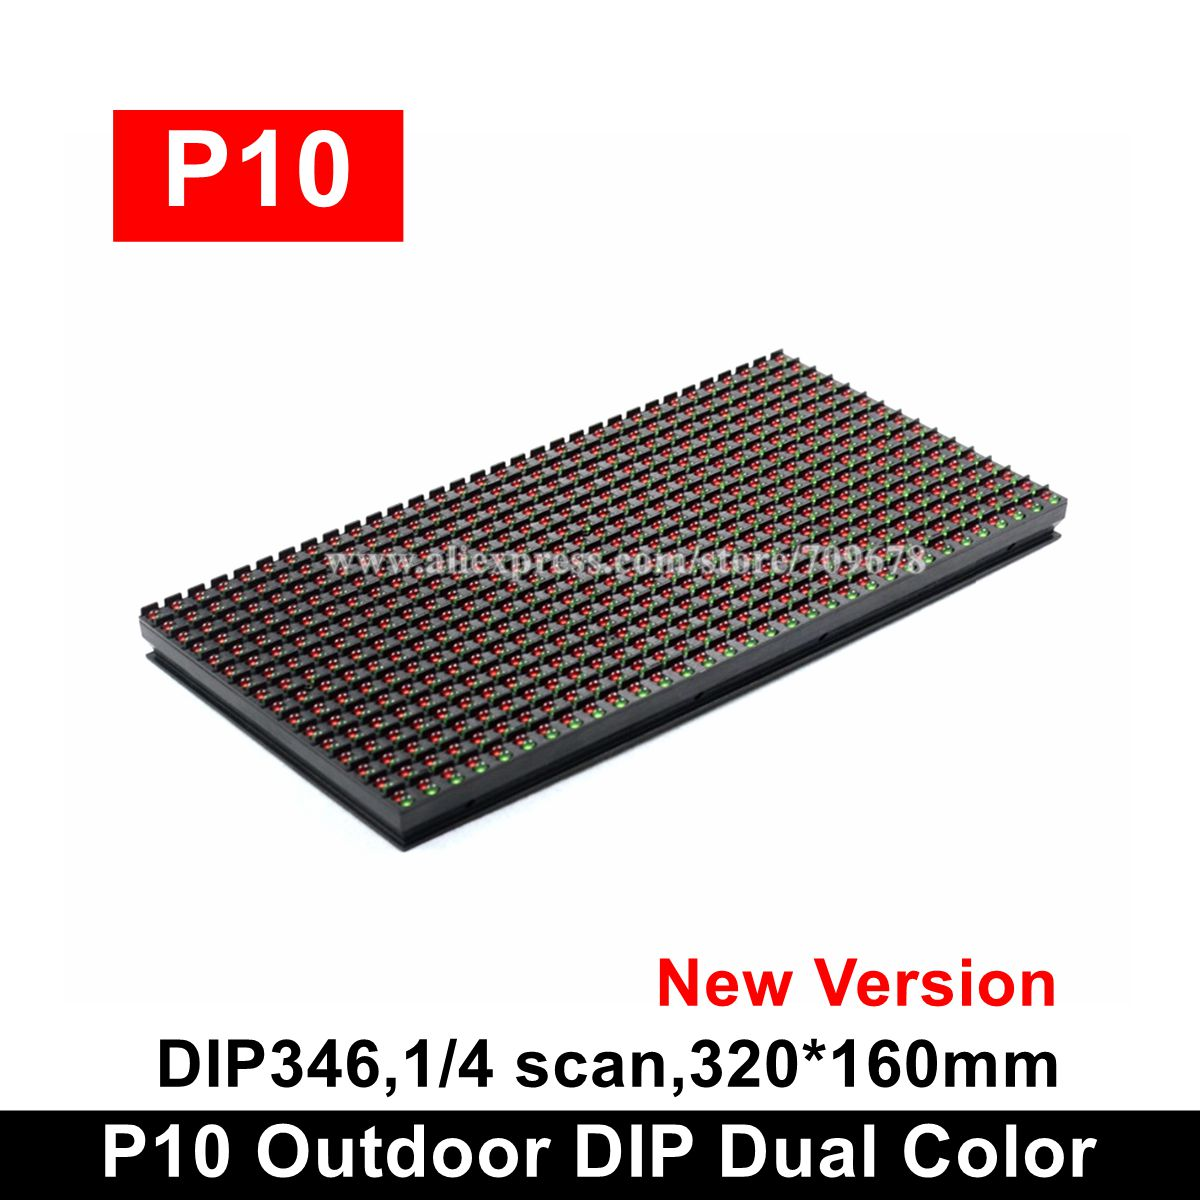 Hot Sale P10 RG DIP Outdoor Two Colors Led Display Module 320x160mm, High Brightness Exterior P10 RG Bi-color Led Module